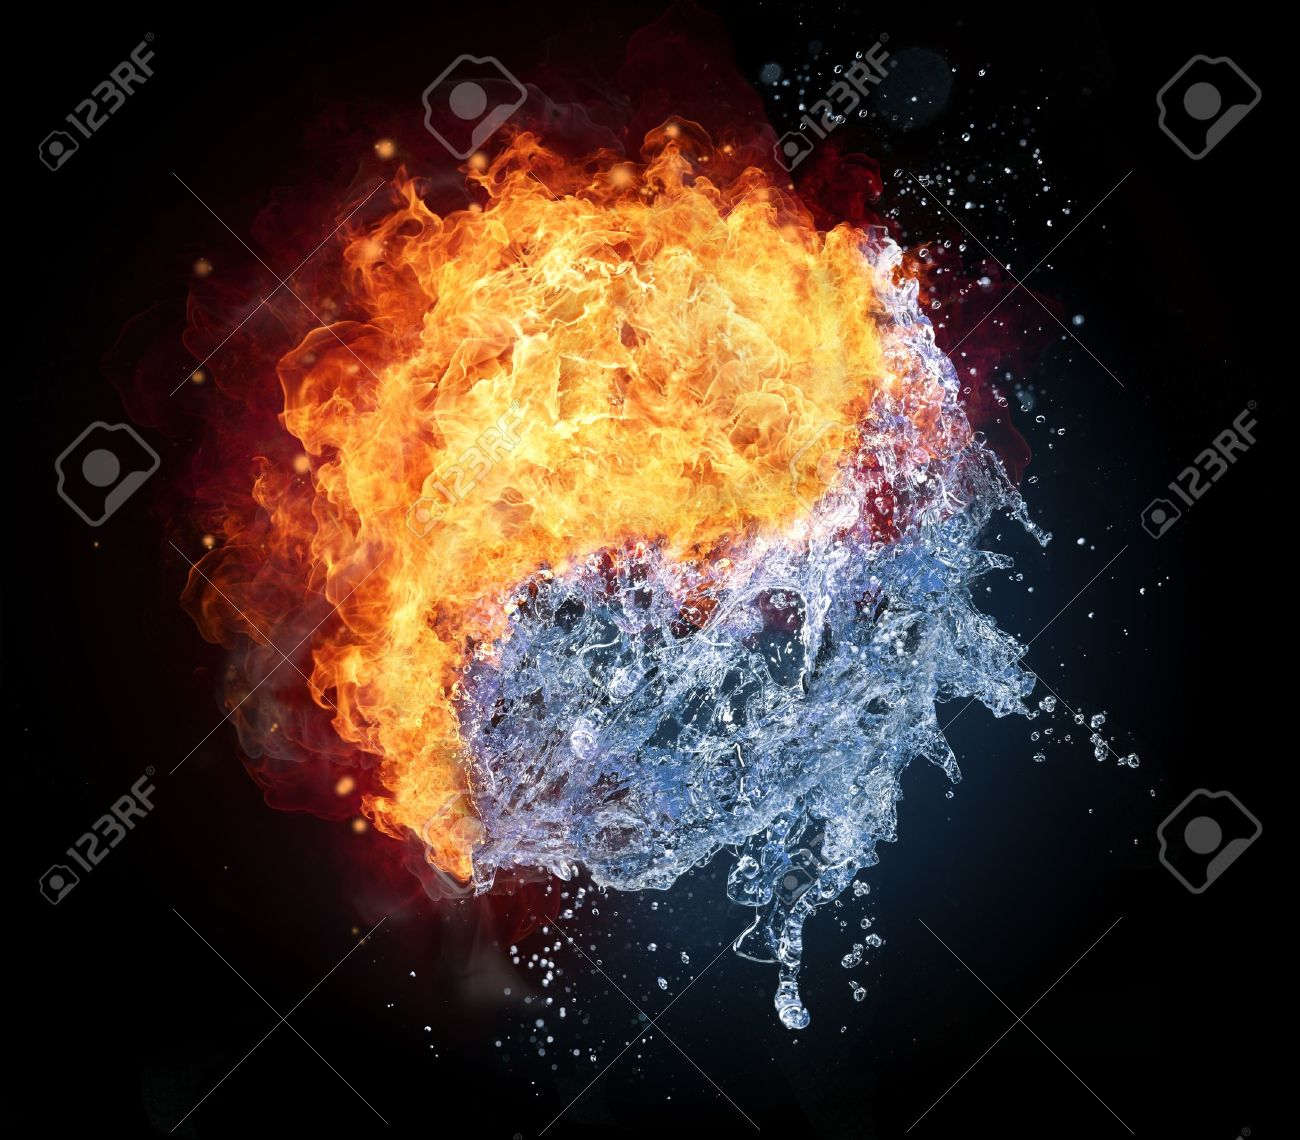 Yin yang symbol made of water and fire isolated on black yin yang symbol made of water and fire isolated on black background stock photo biocorpaavc Choice Image